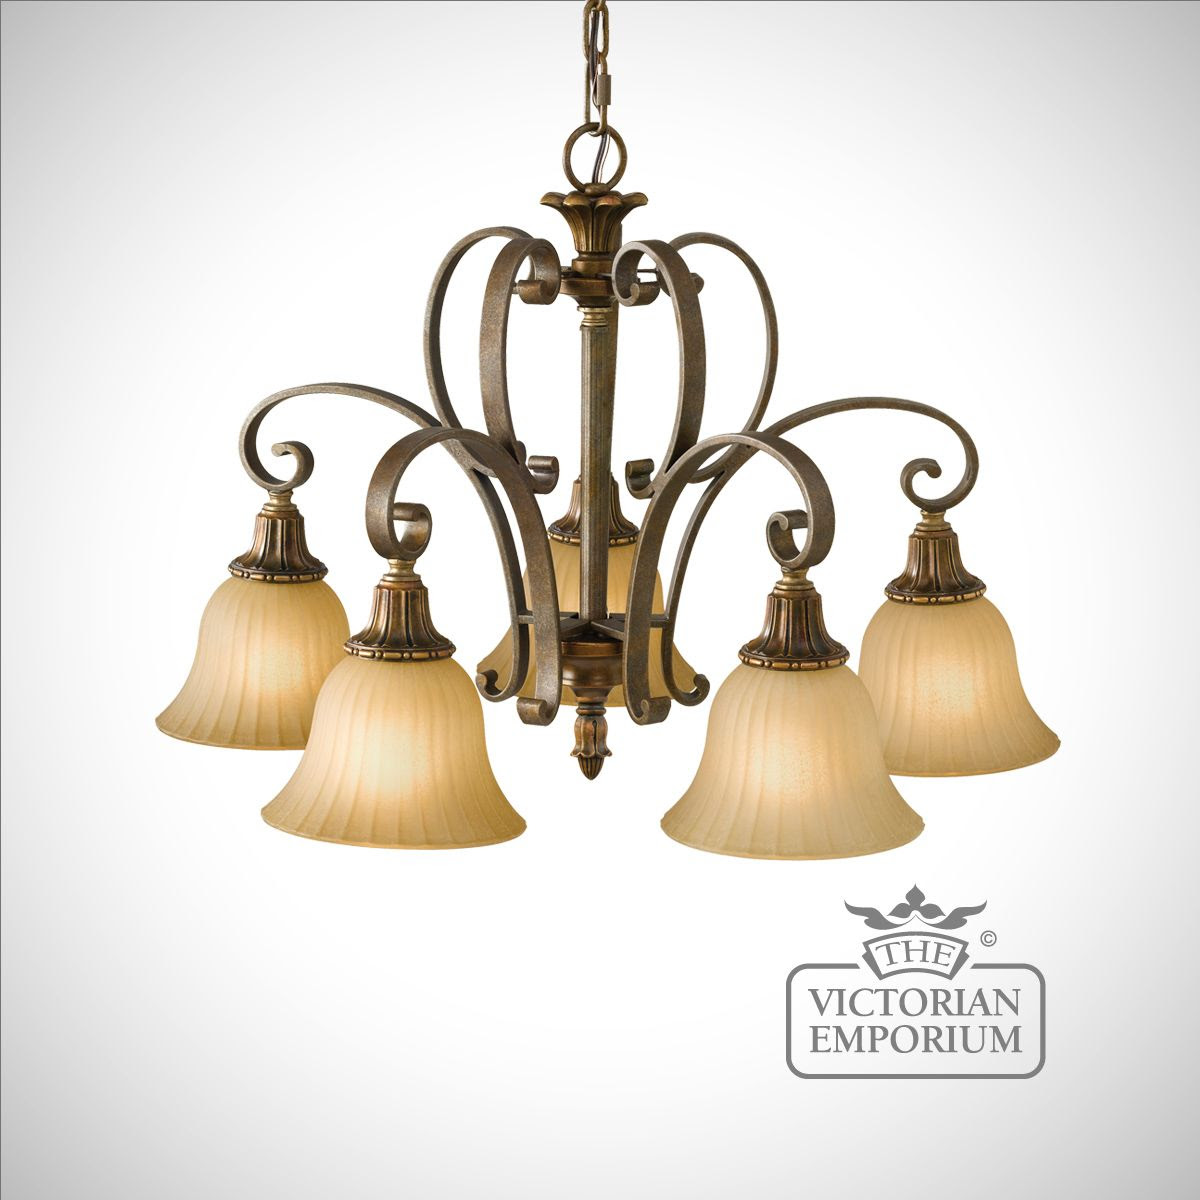 View All Modern Wall Lights View All Double Insulated